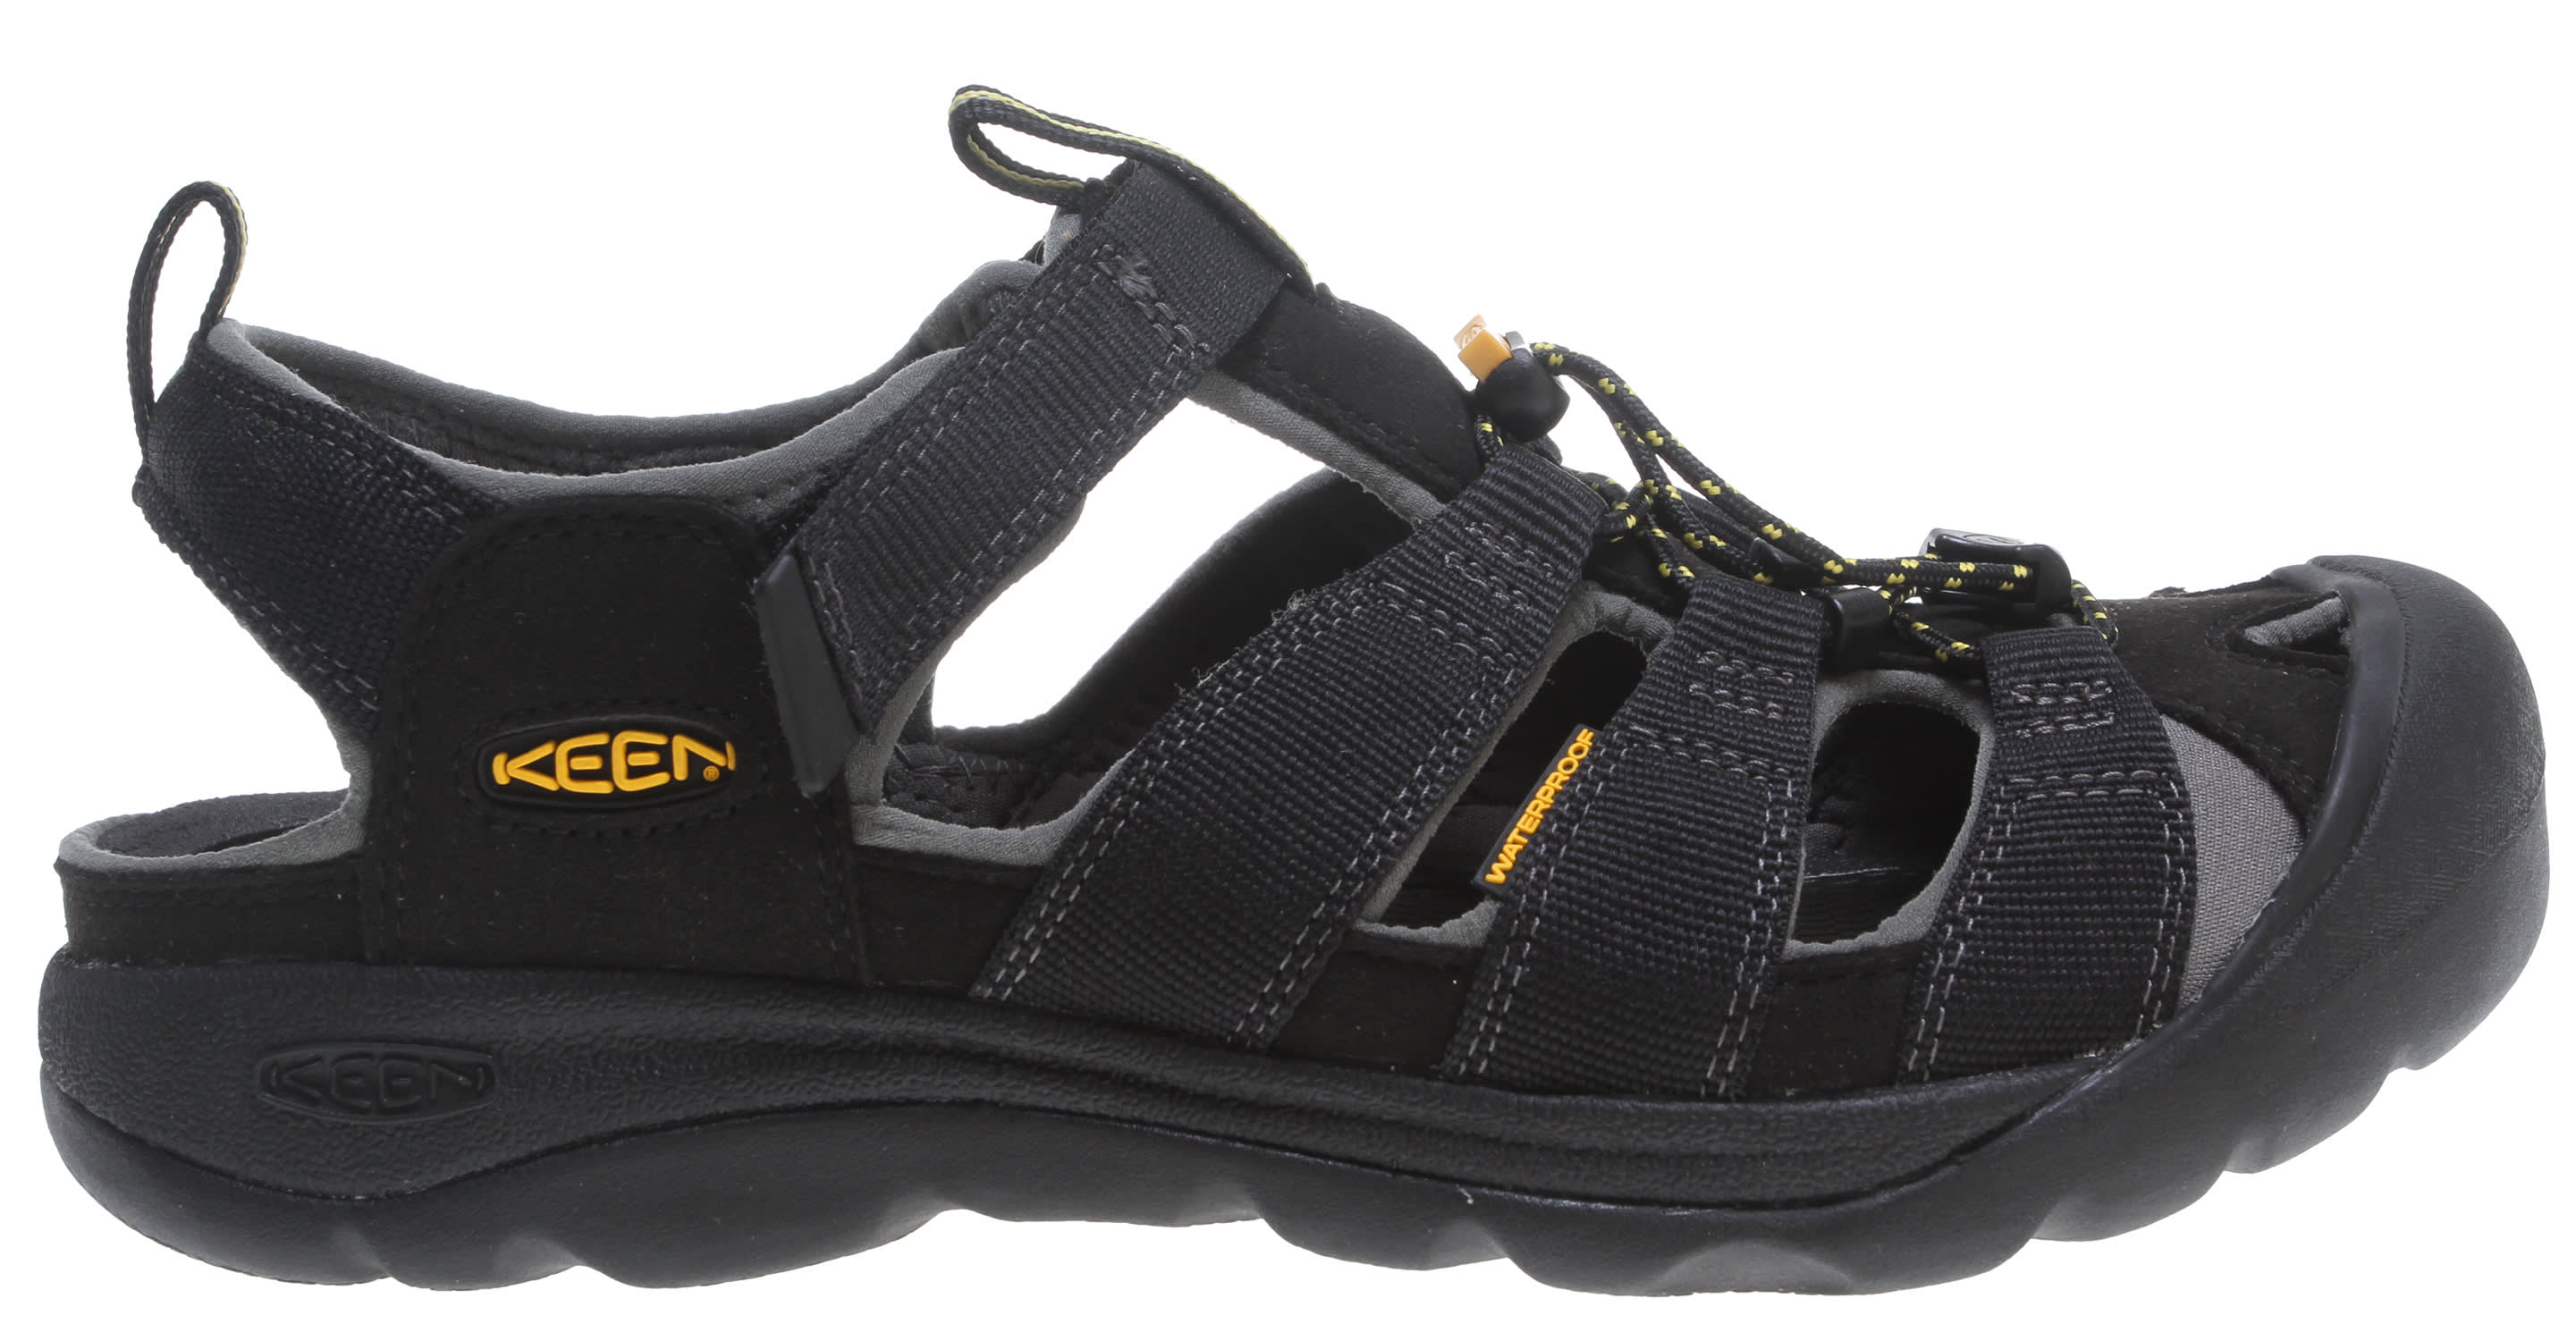 45921121d1ef Keen Commuter III Bike Sandals Black Yellow - Commuter Bikes